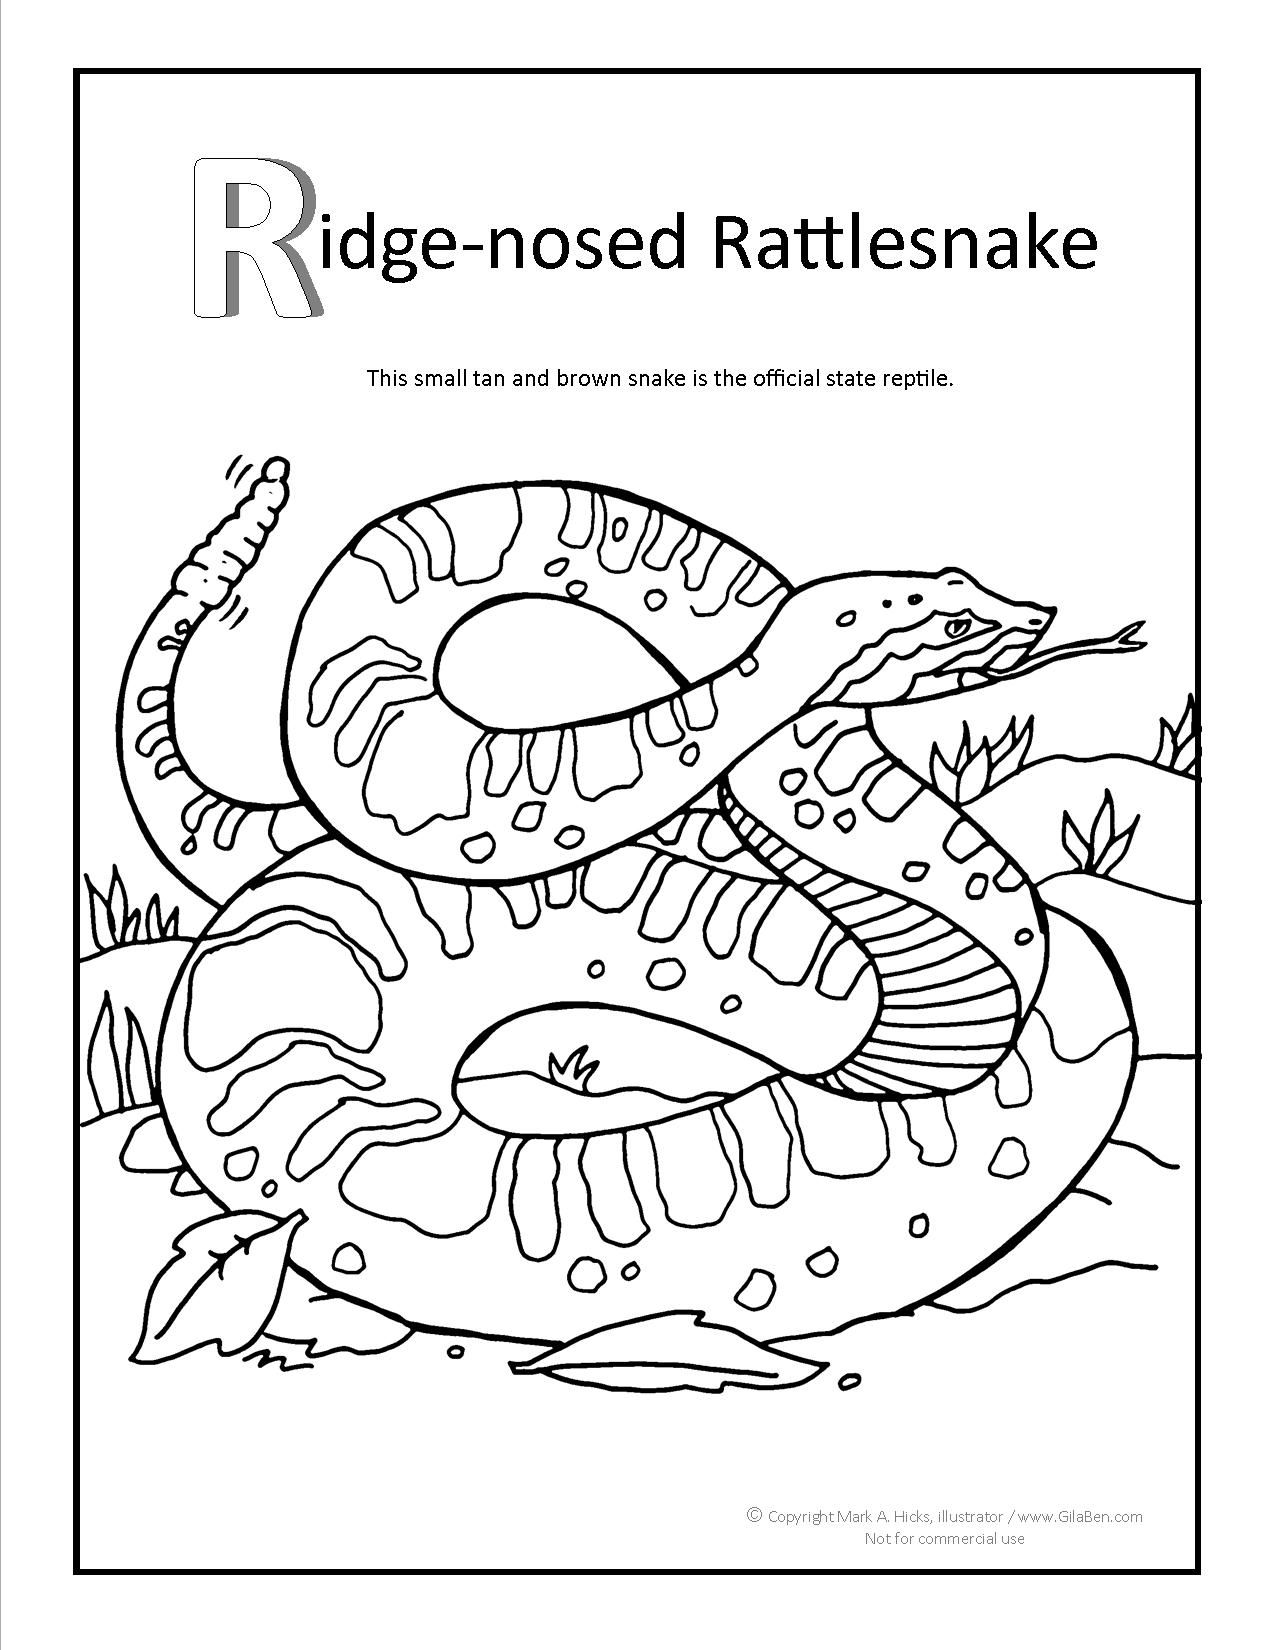 Ridge-nosed Rattlesnake Coloring page at GilaBen.com | Arizona ...